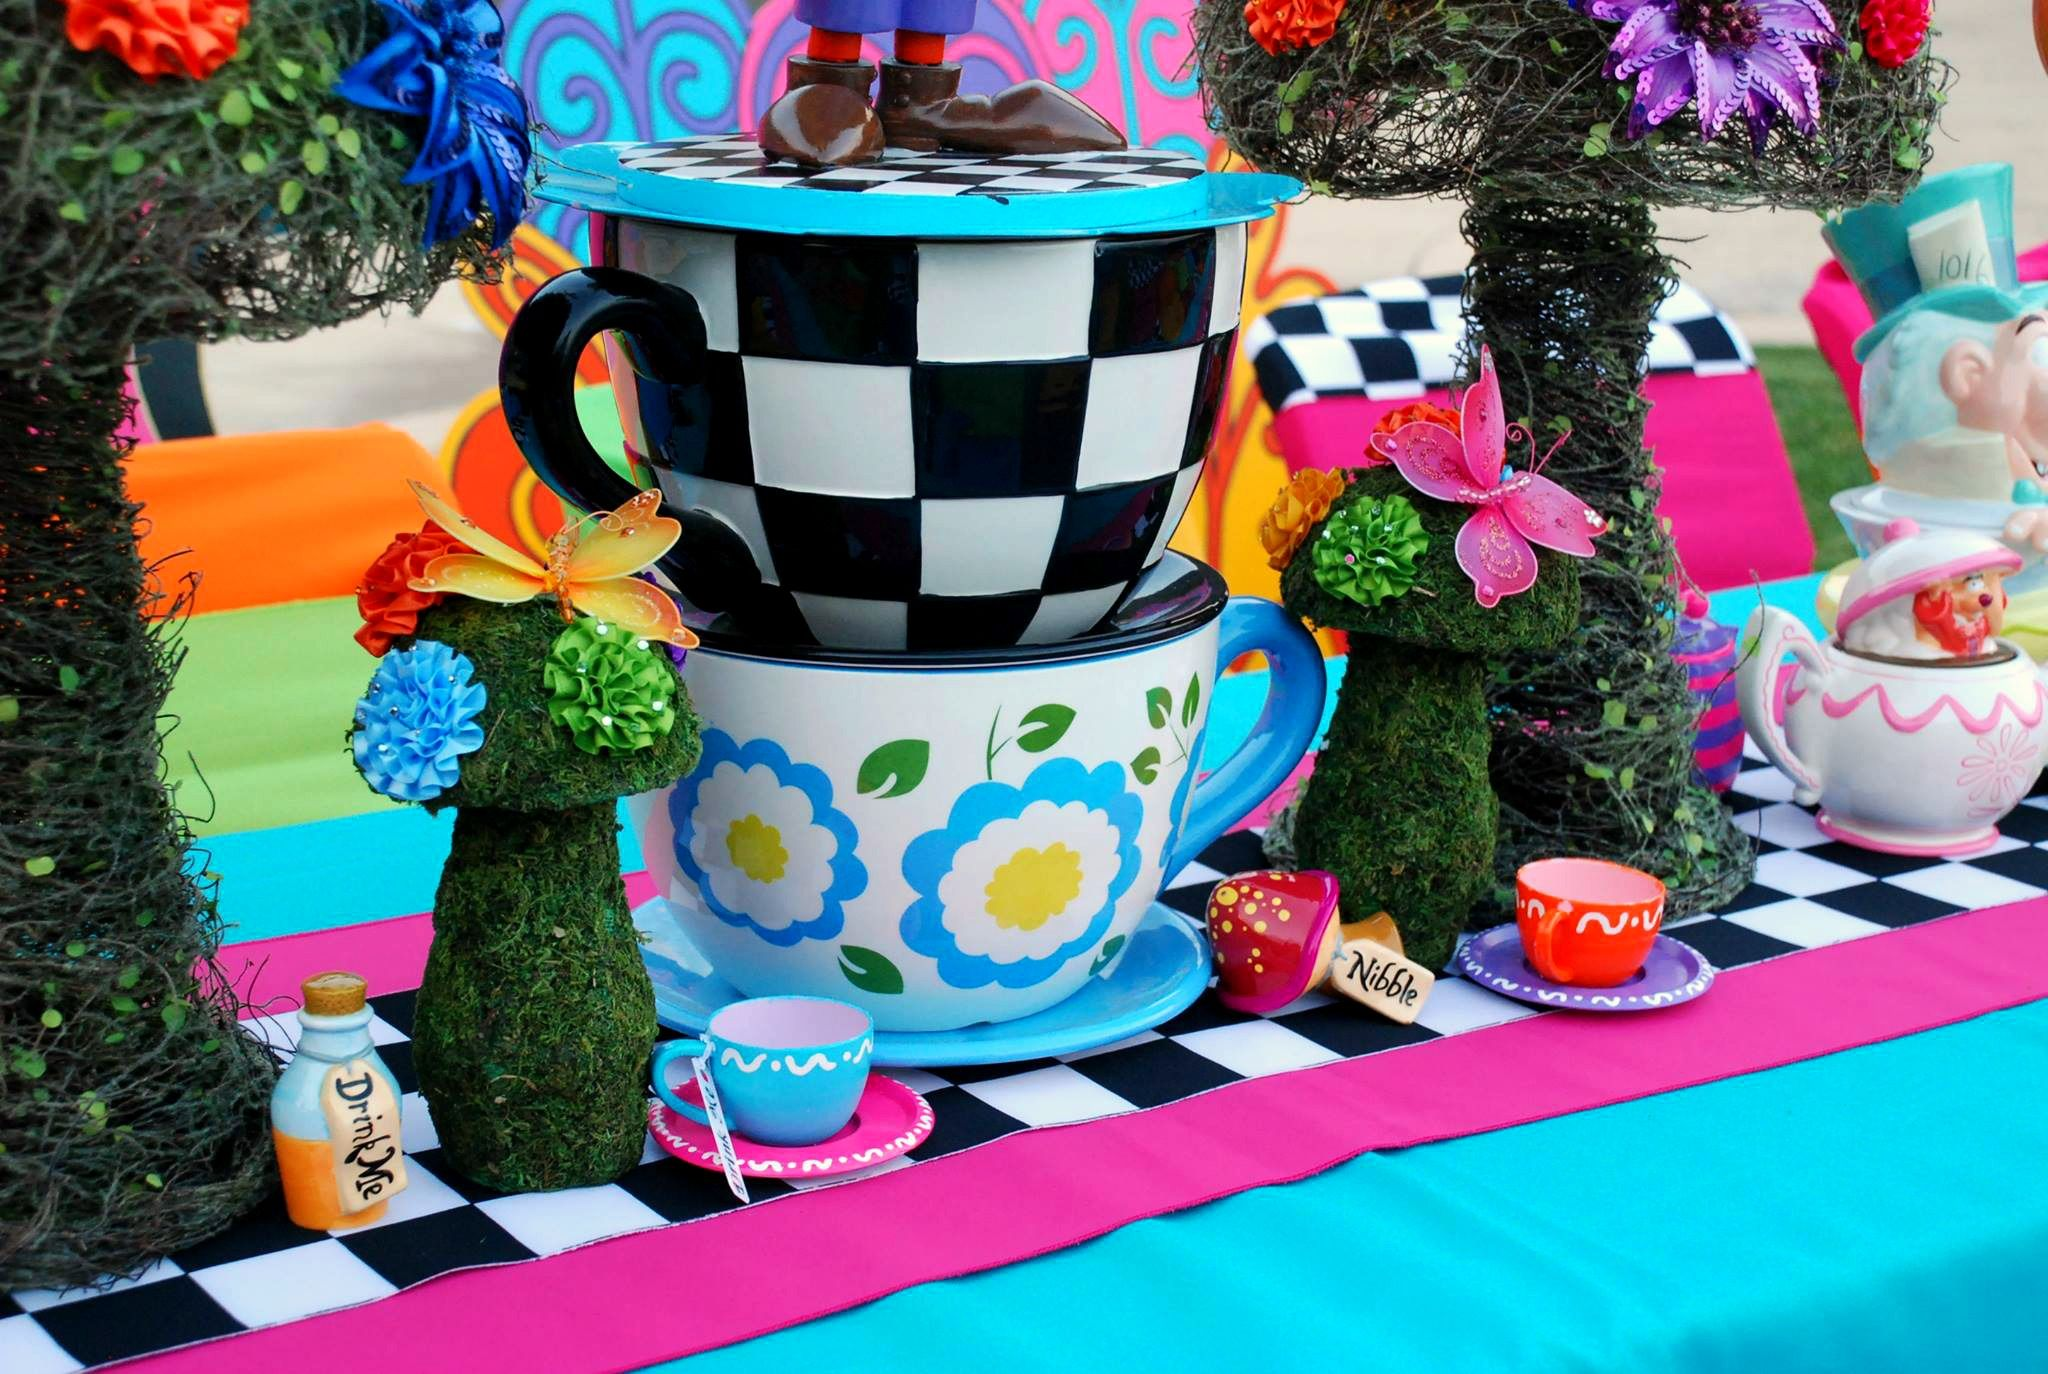 Alice in Wonderland / Mad Hatter party by: WONDERLAND PARTY PROPS Southern California's premier wonderland theme PROP rental and event decorating service.   Call for reservation : ( 661 ) 250-8164 See us on Facebook